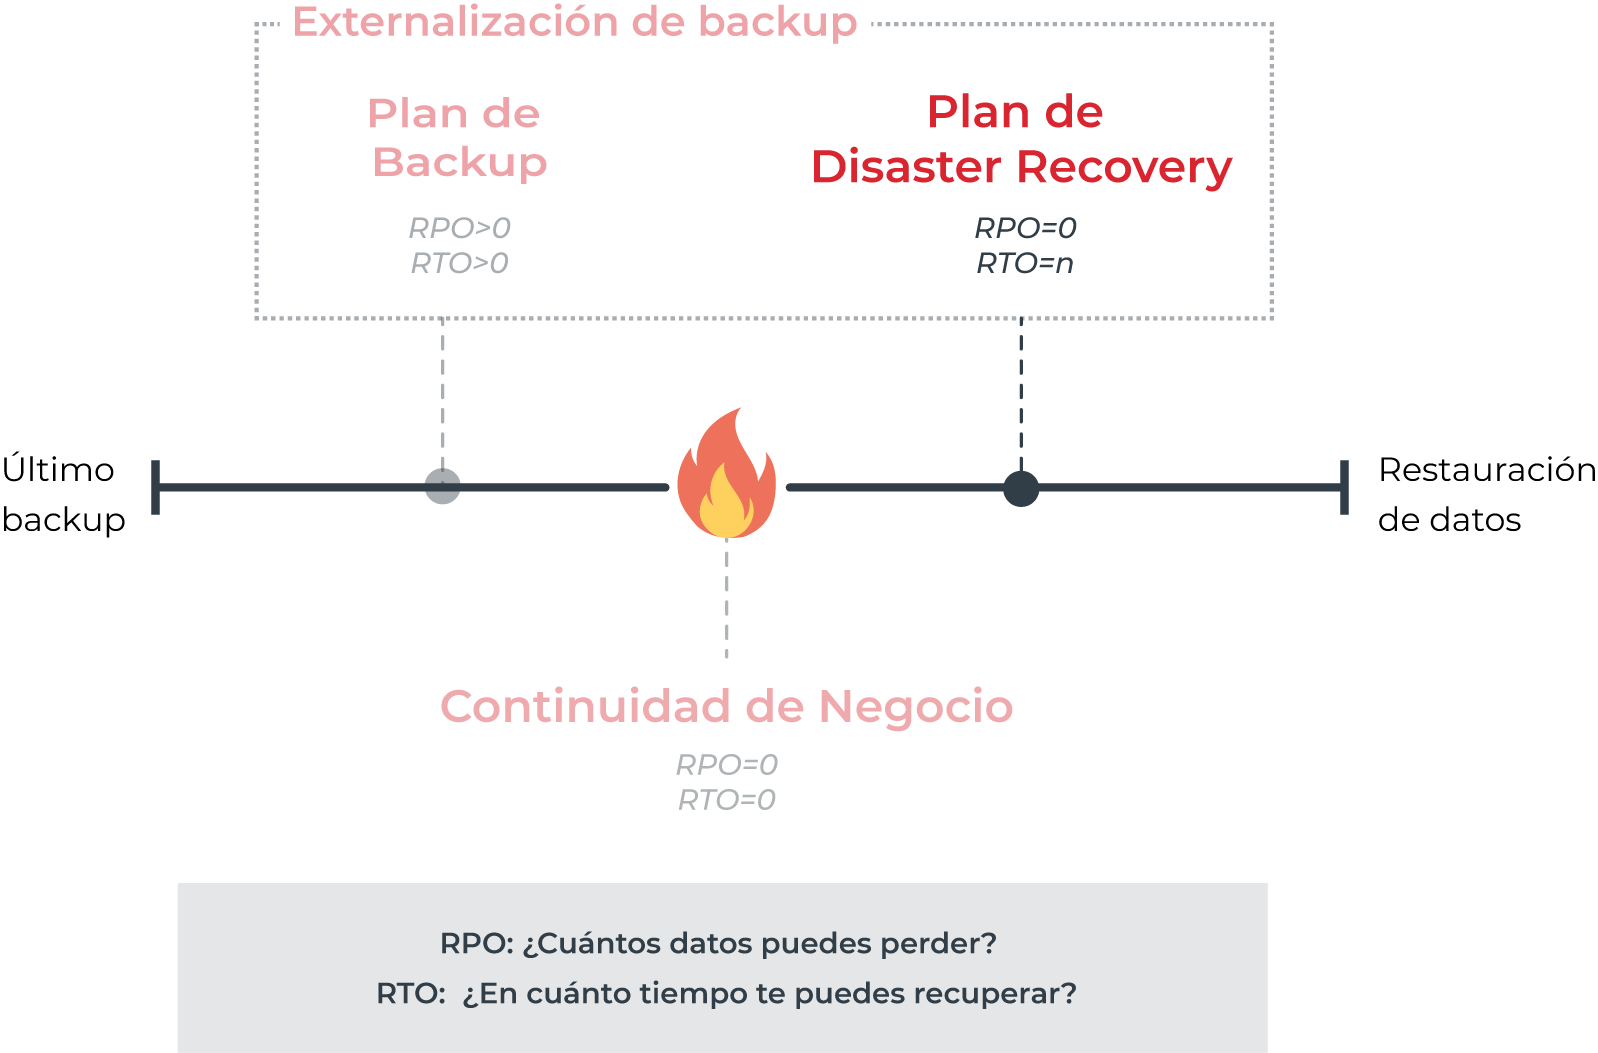 plancontingencia dr 1 - Plan de Disaster Recovery